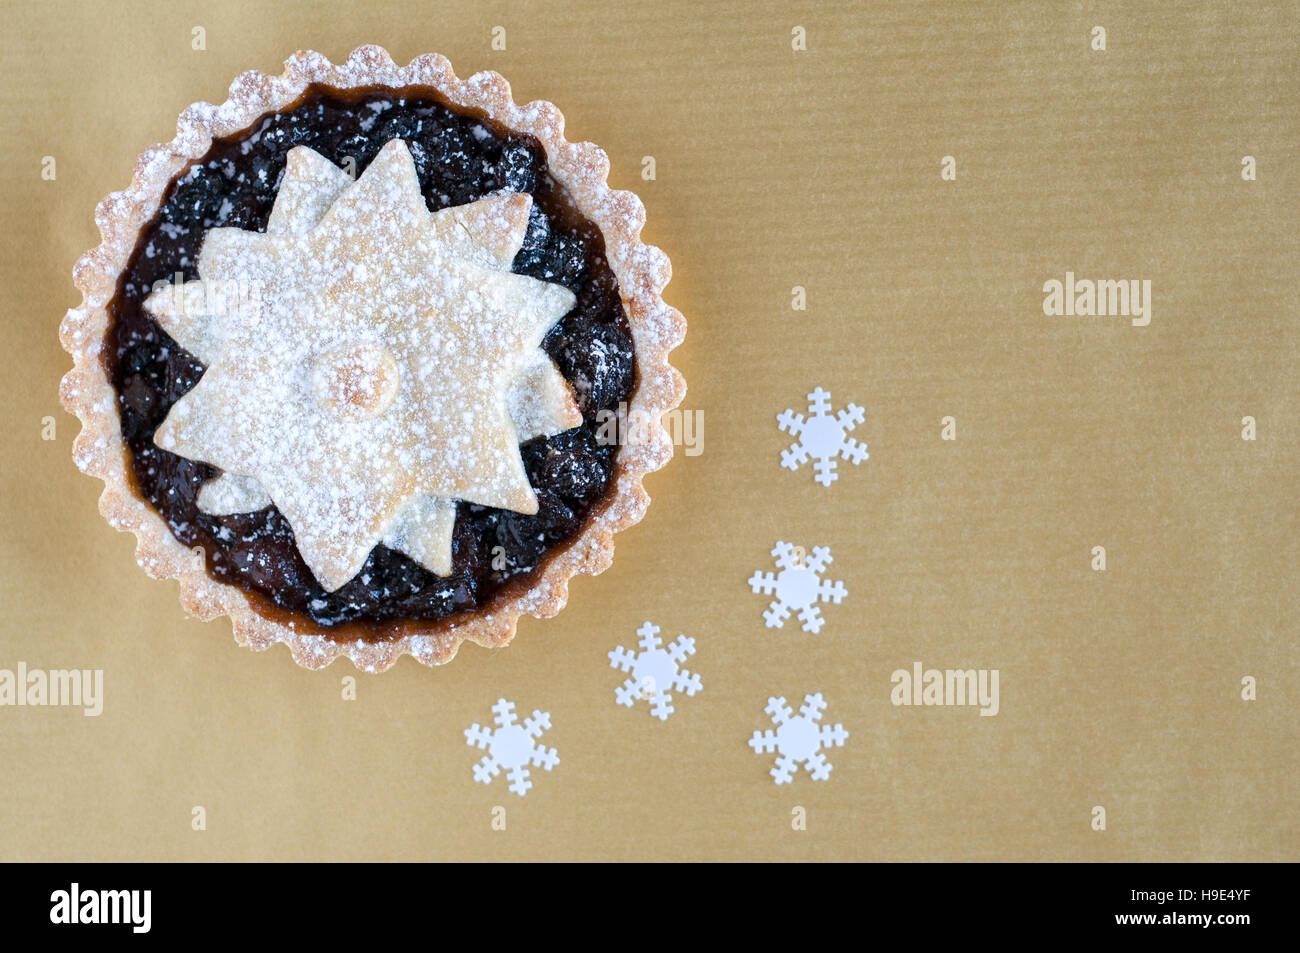 Christmas mincemeat pies, decorated with a star and dusted with icing sugar on a gold background - Stock Image